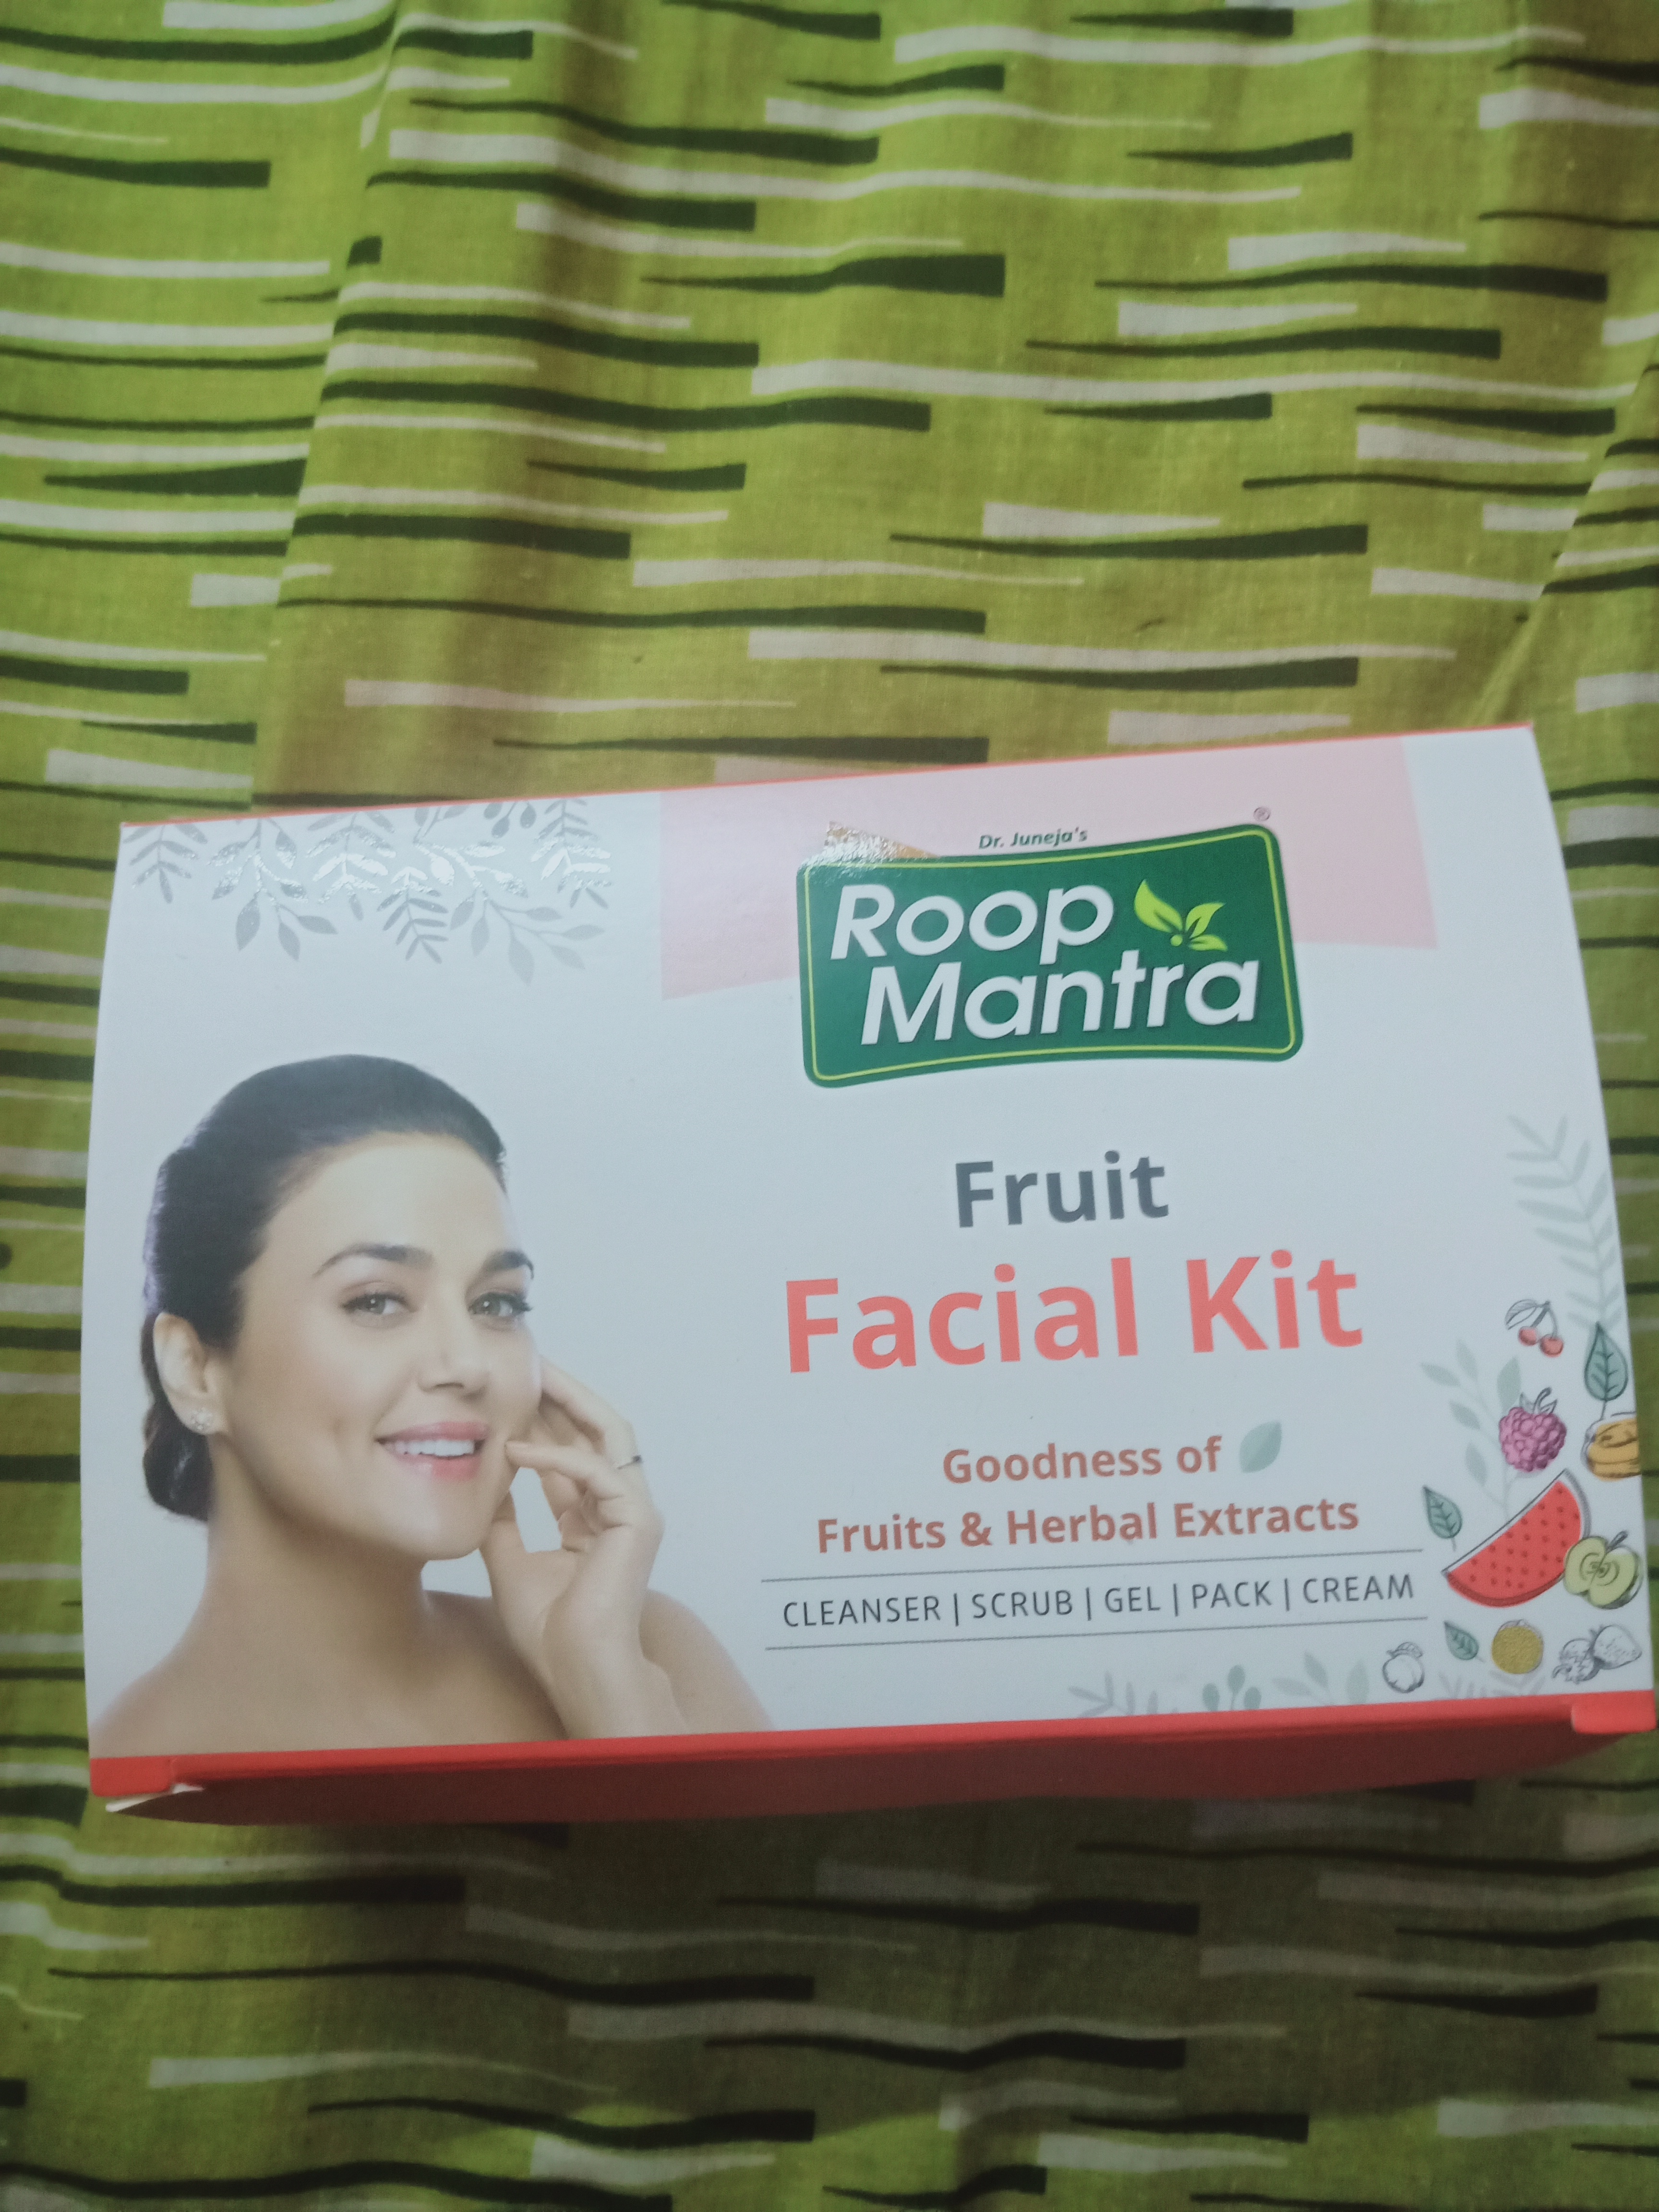 Roop Mantra Fruit Facial Kit-Best Fruity Facial kit-By geethuthomas24-2